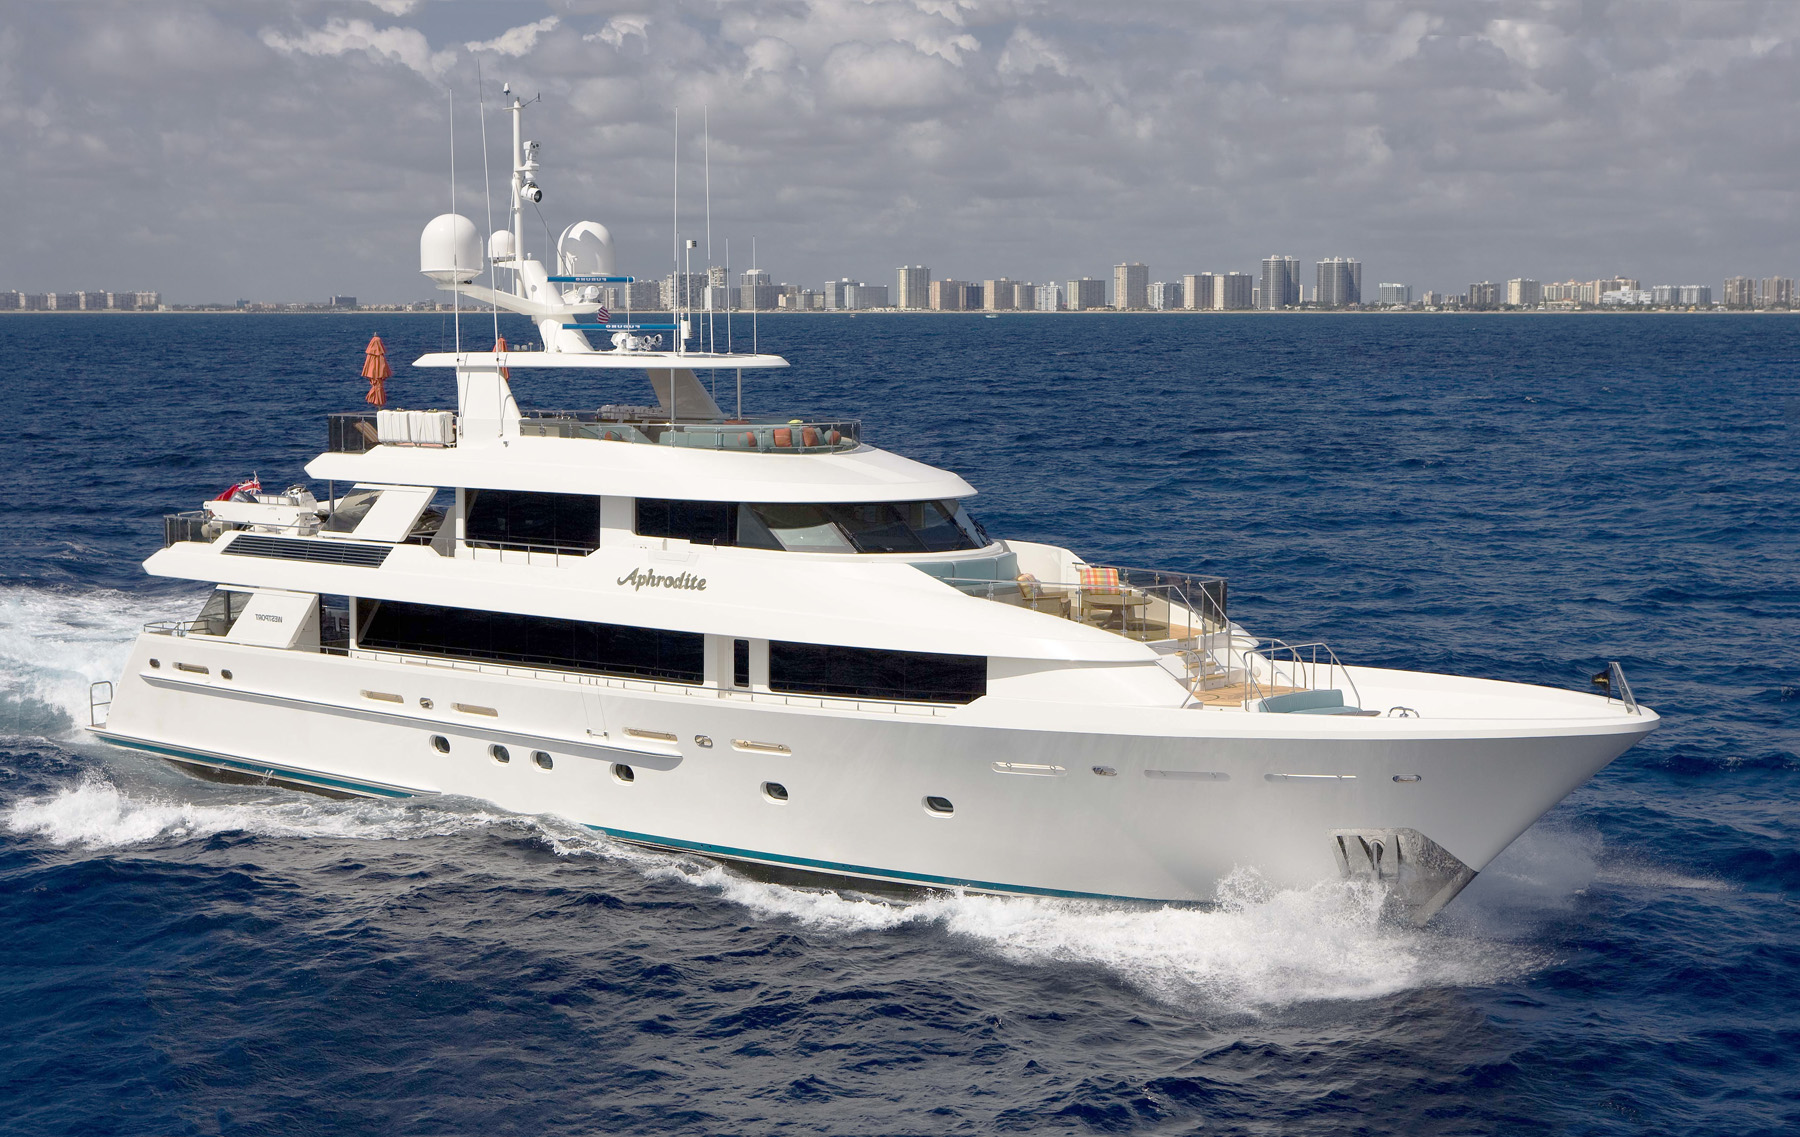 APHRODITE specs with detailed specification and builder summary